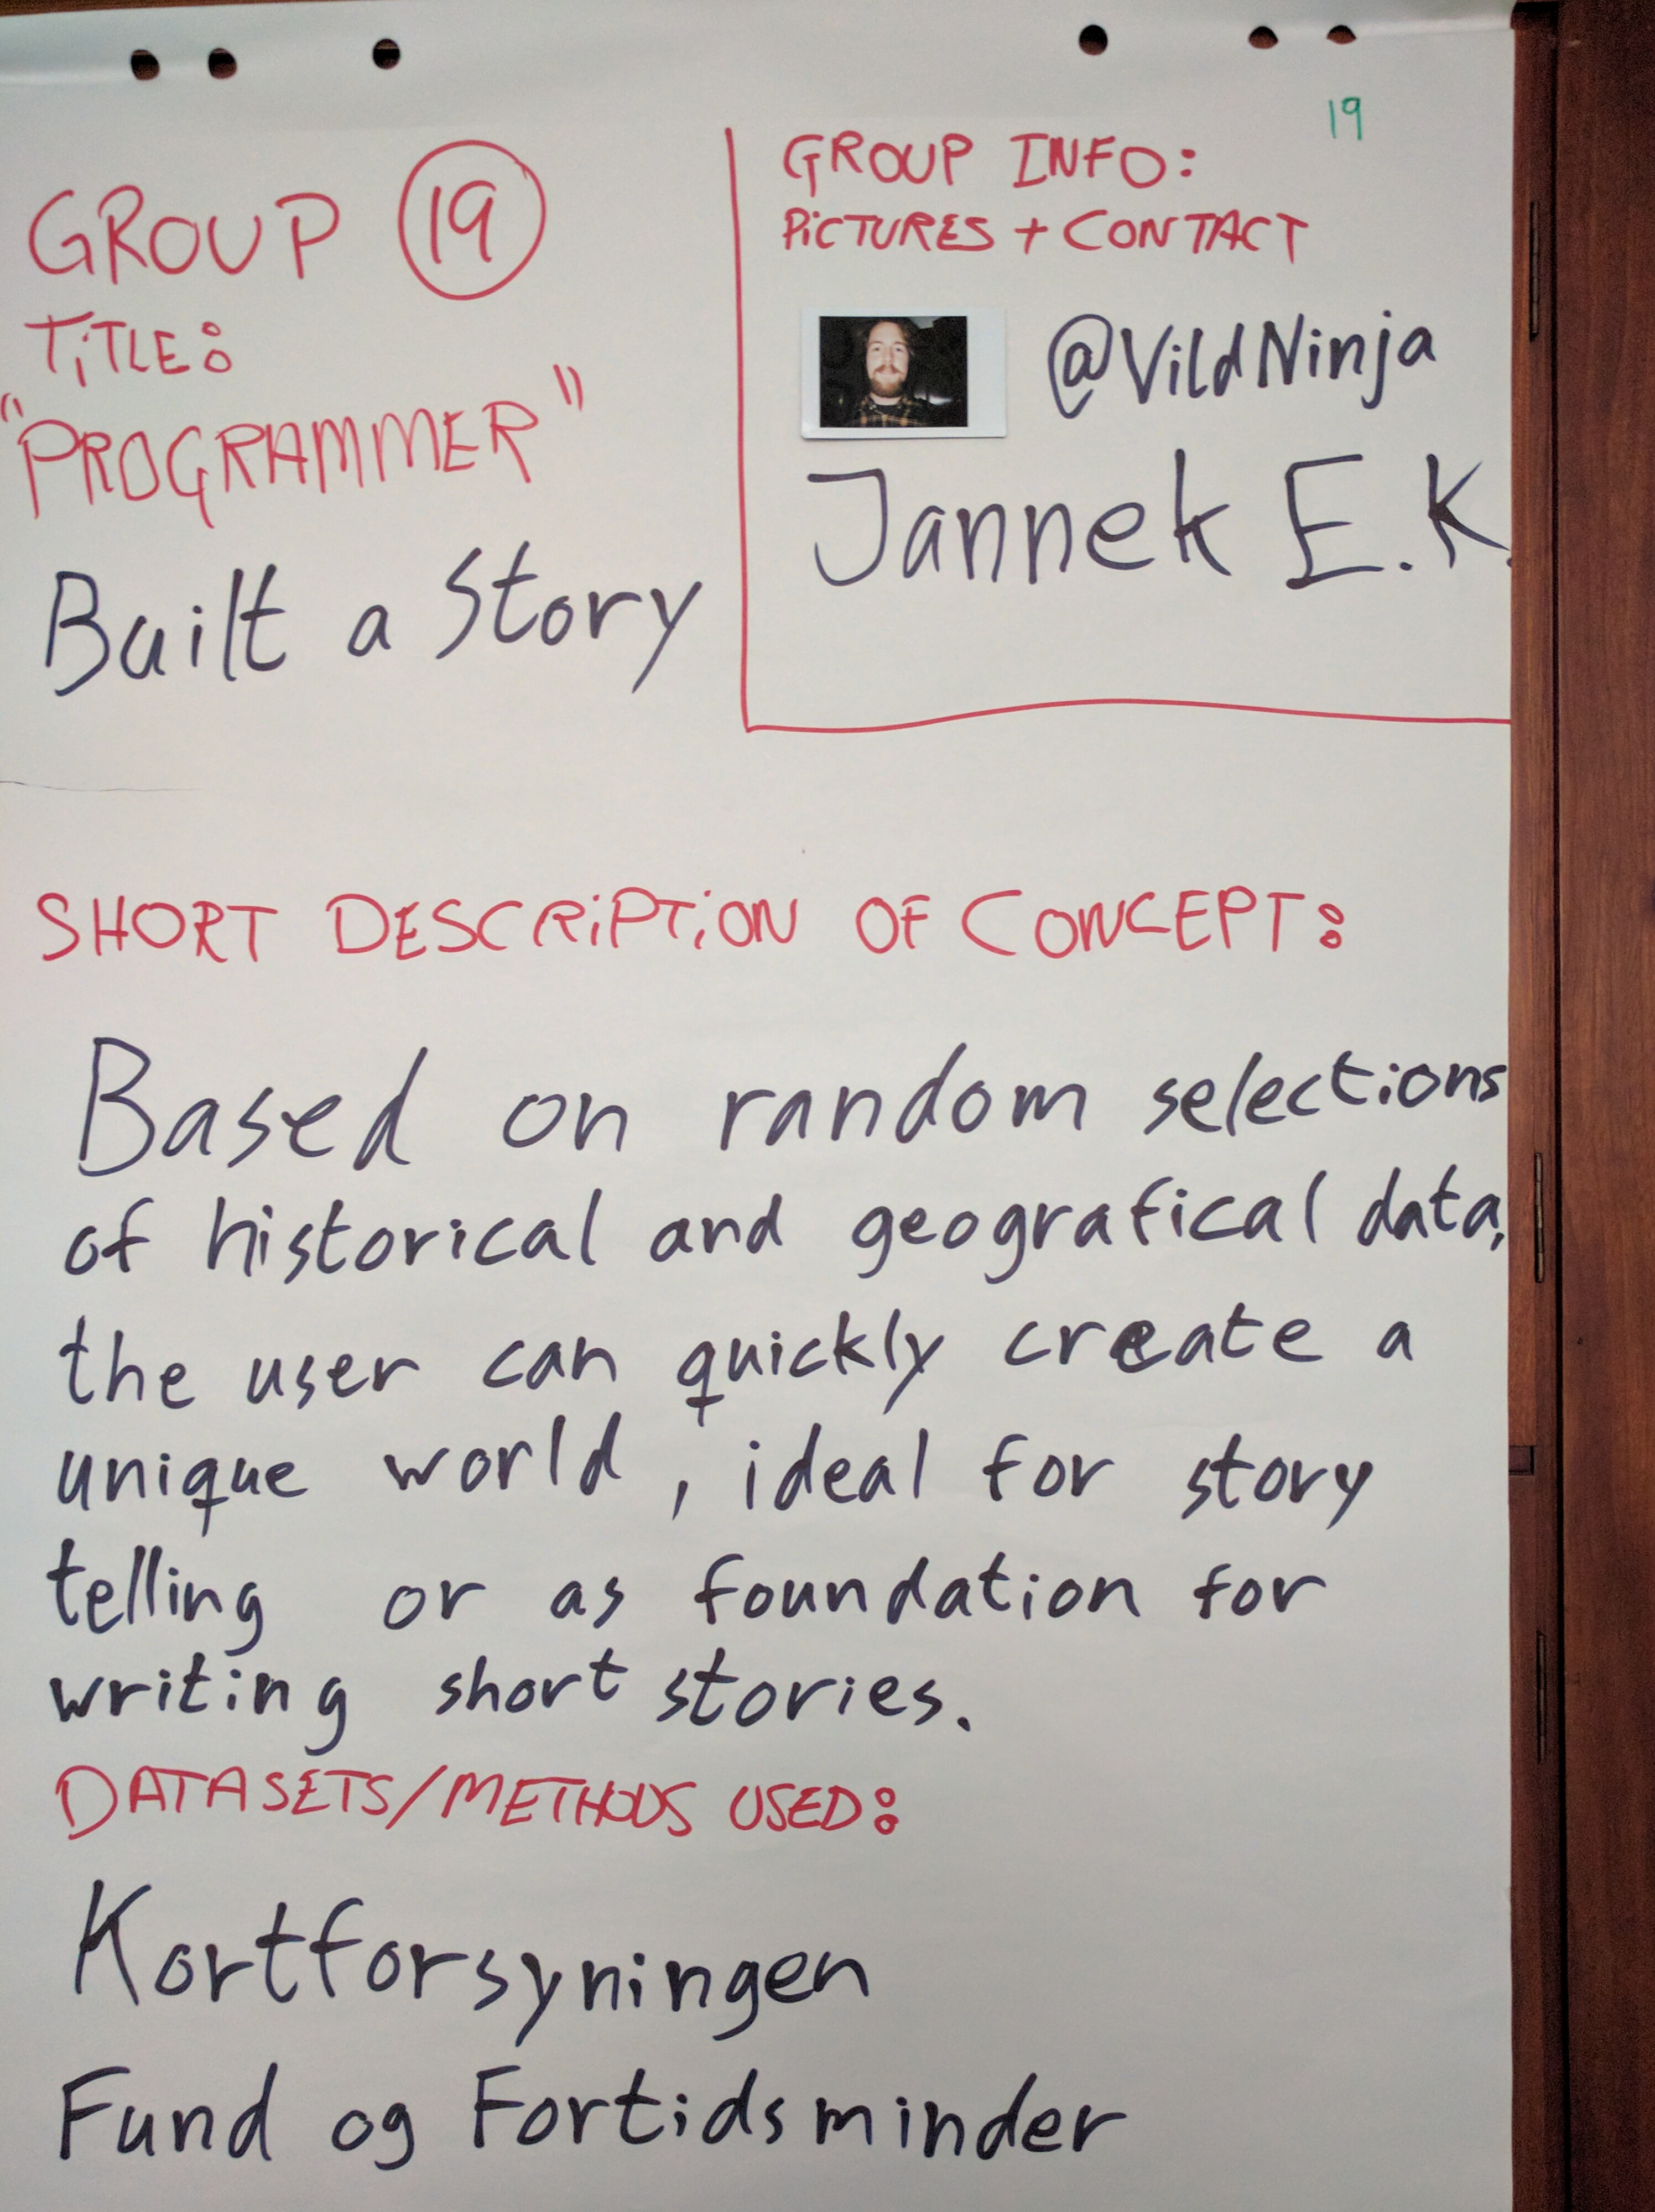 Group 19 – Build a Story | #HACK4DK